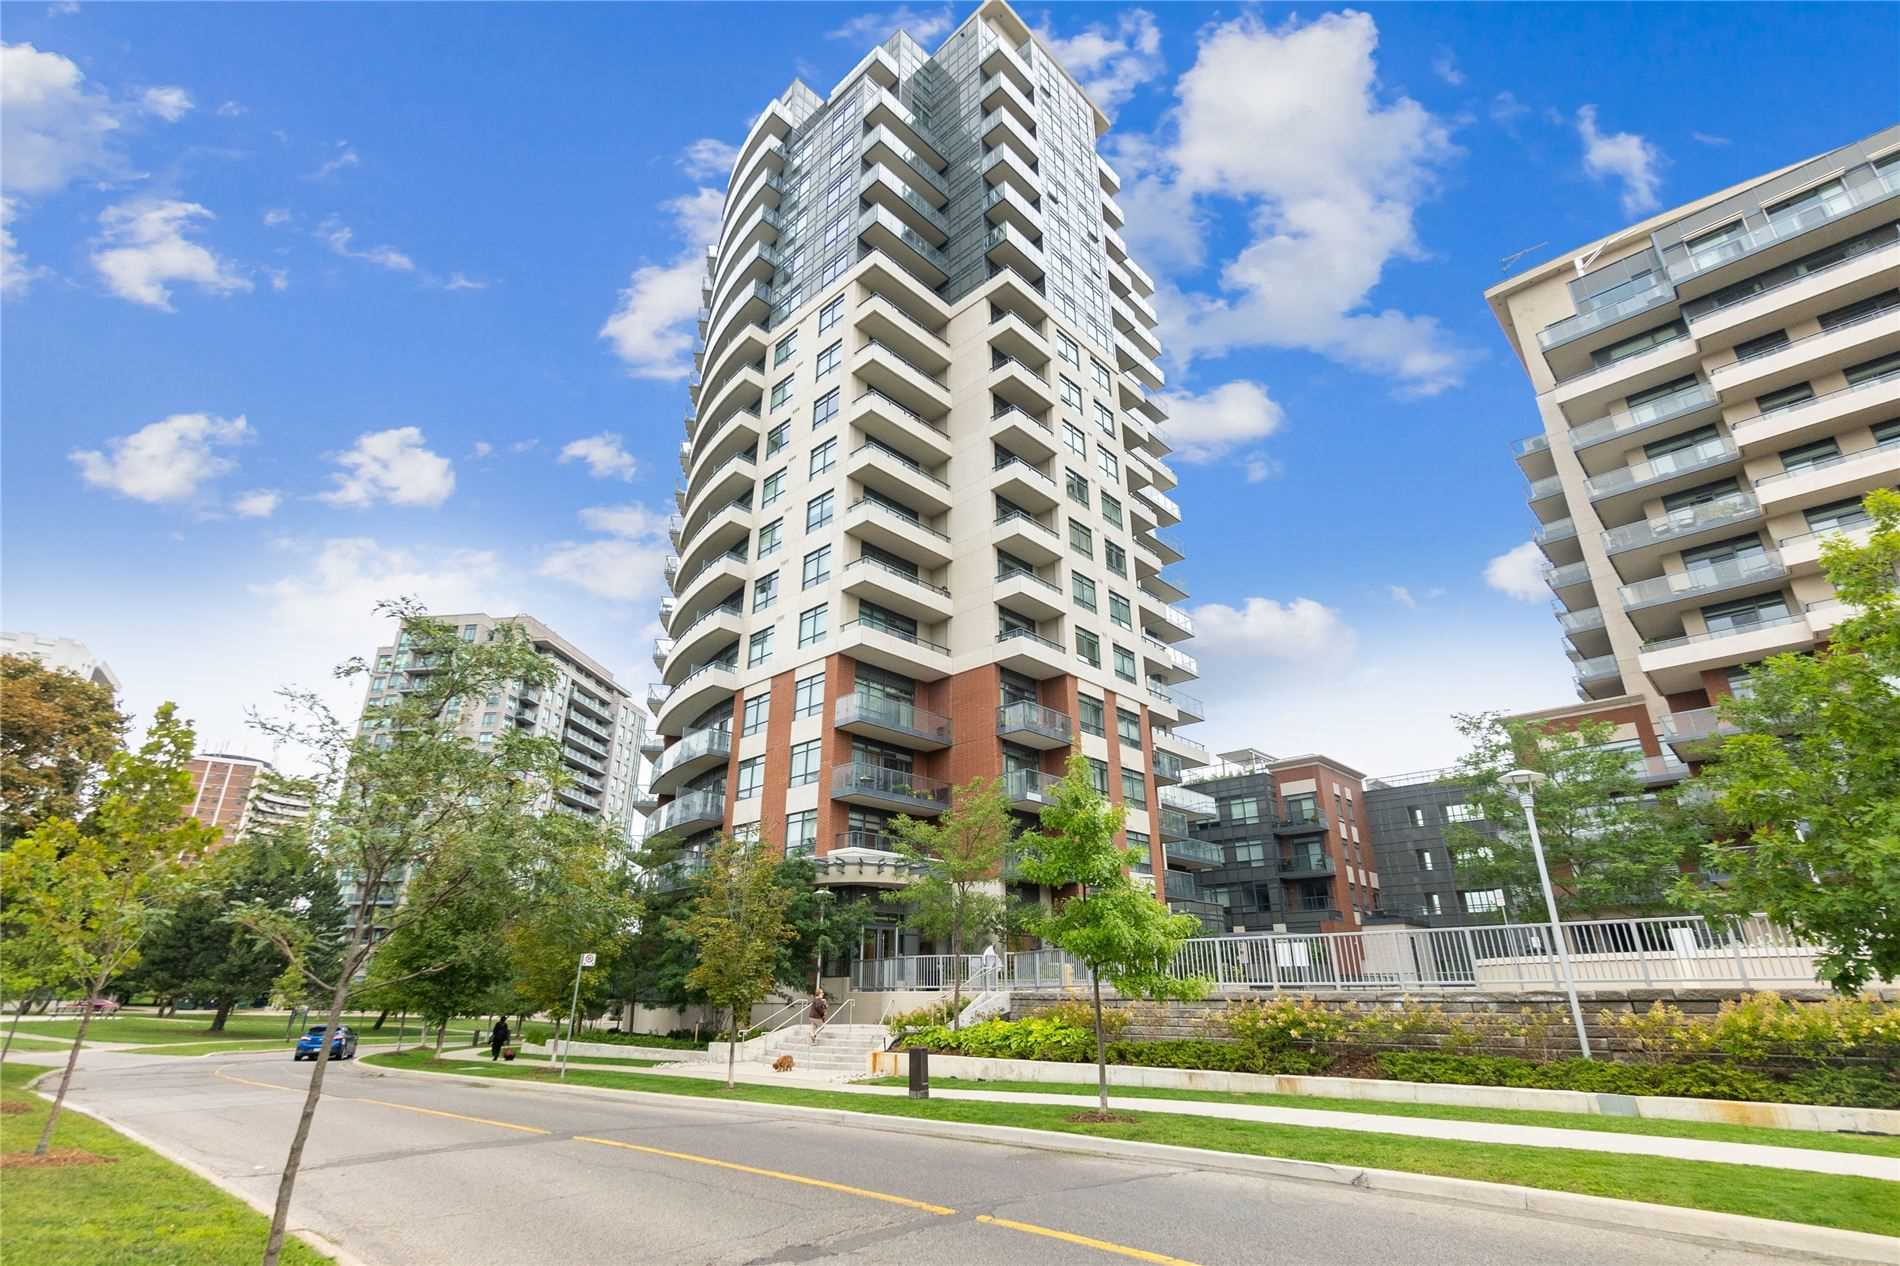 25 Fontenay Crt, Toronto, Ontario M9A0C4, 1 Bedroom Bedrooms, 5 Rooms Rooms,1 BathroomBathrooms,Condo Apt,For Sale,Fontenay,W4903738